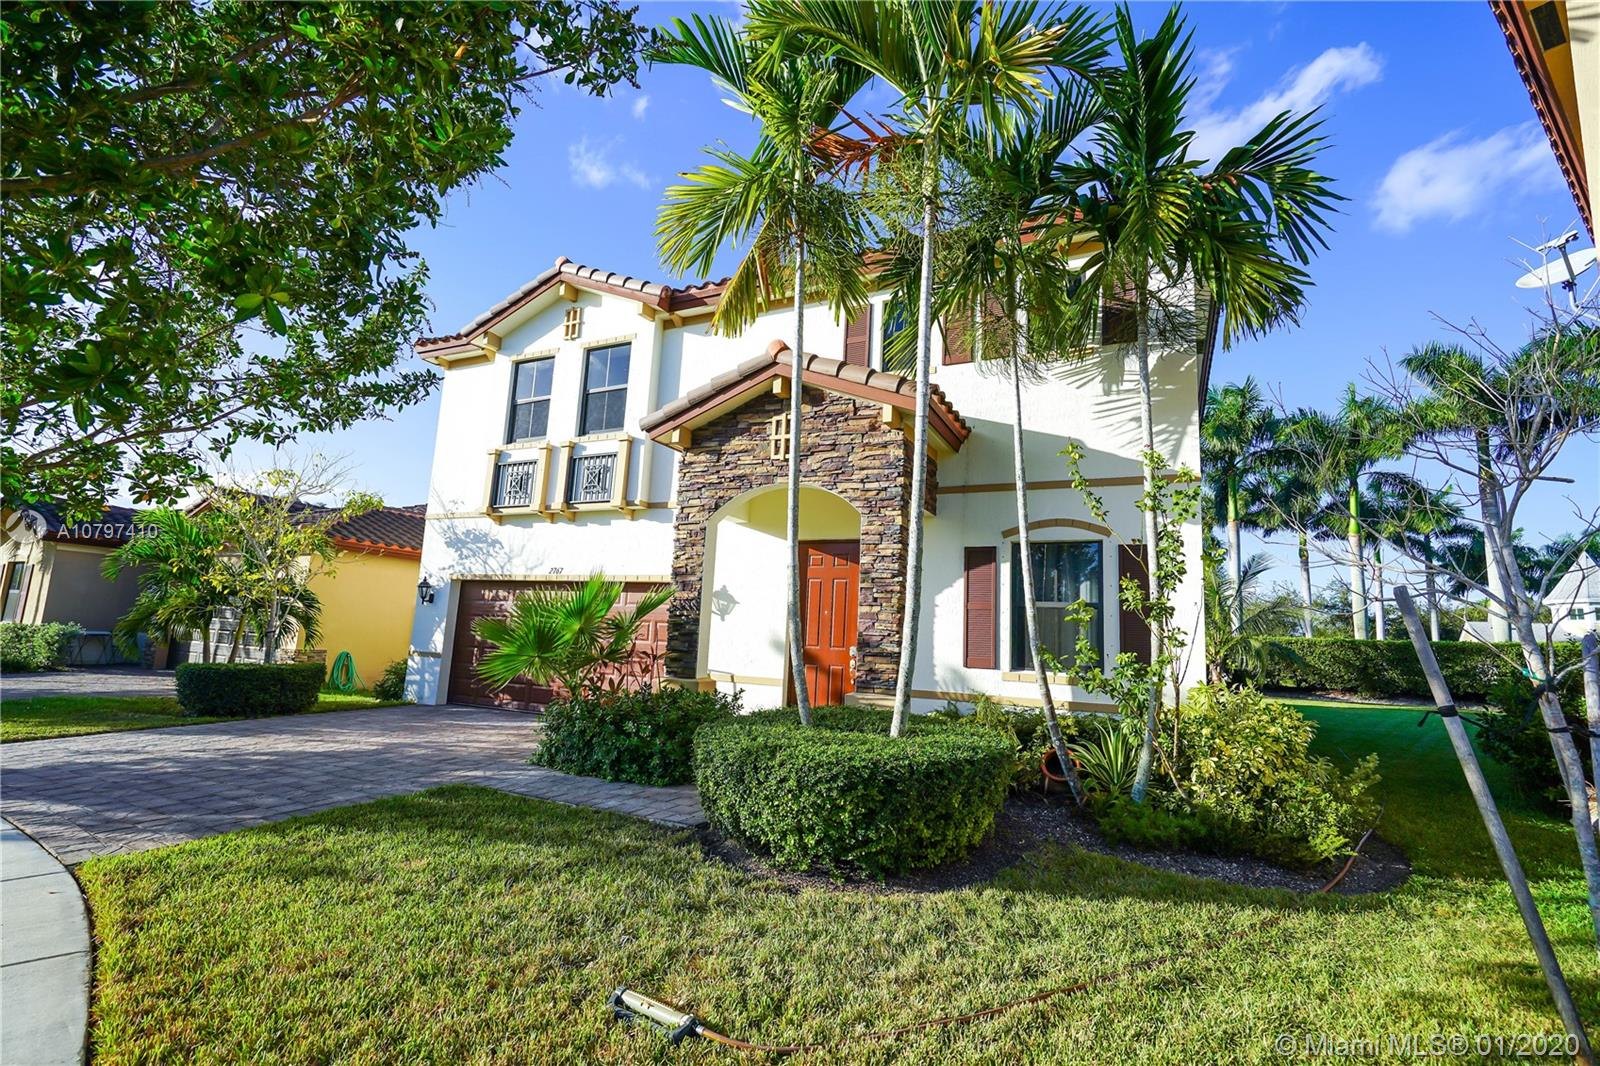 2767 NE 2nd Drive, Homestead, FL 33033 - Homestead, FL real estate listing